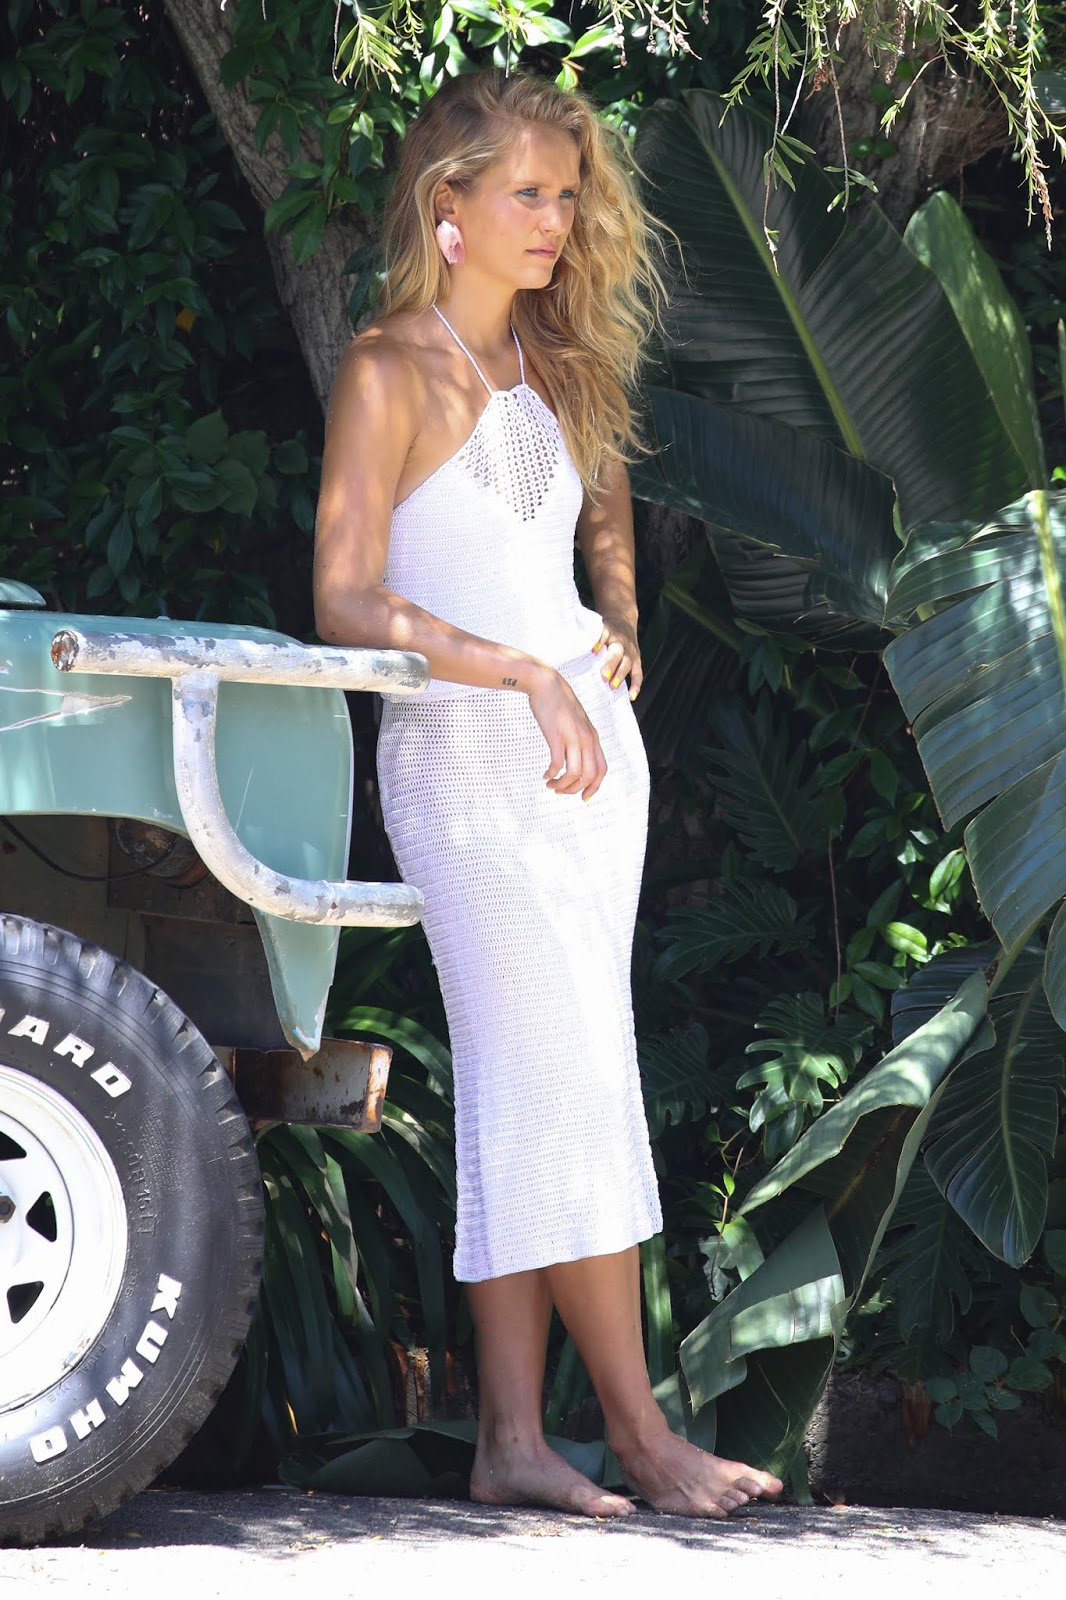 Sailor Brinkley-Cook pictured onset of a photoshoot in Sydney - 02/04/2019